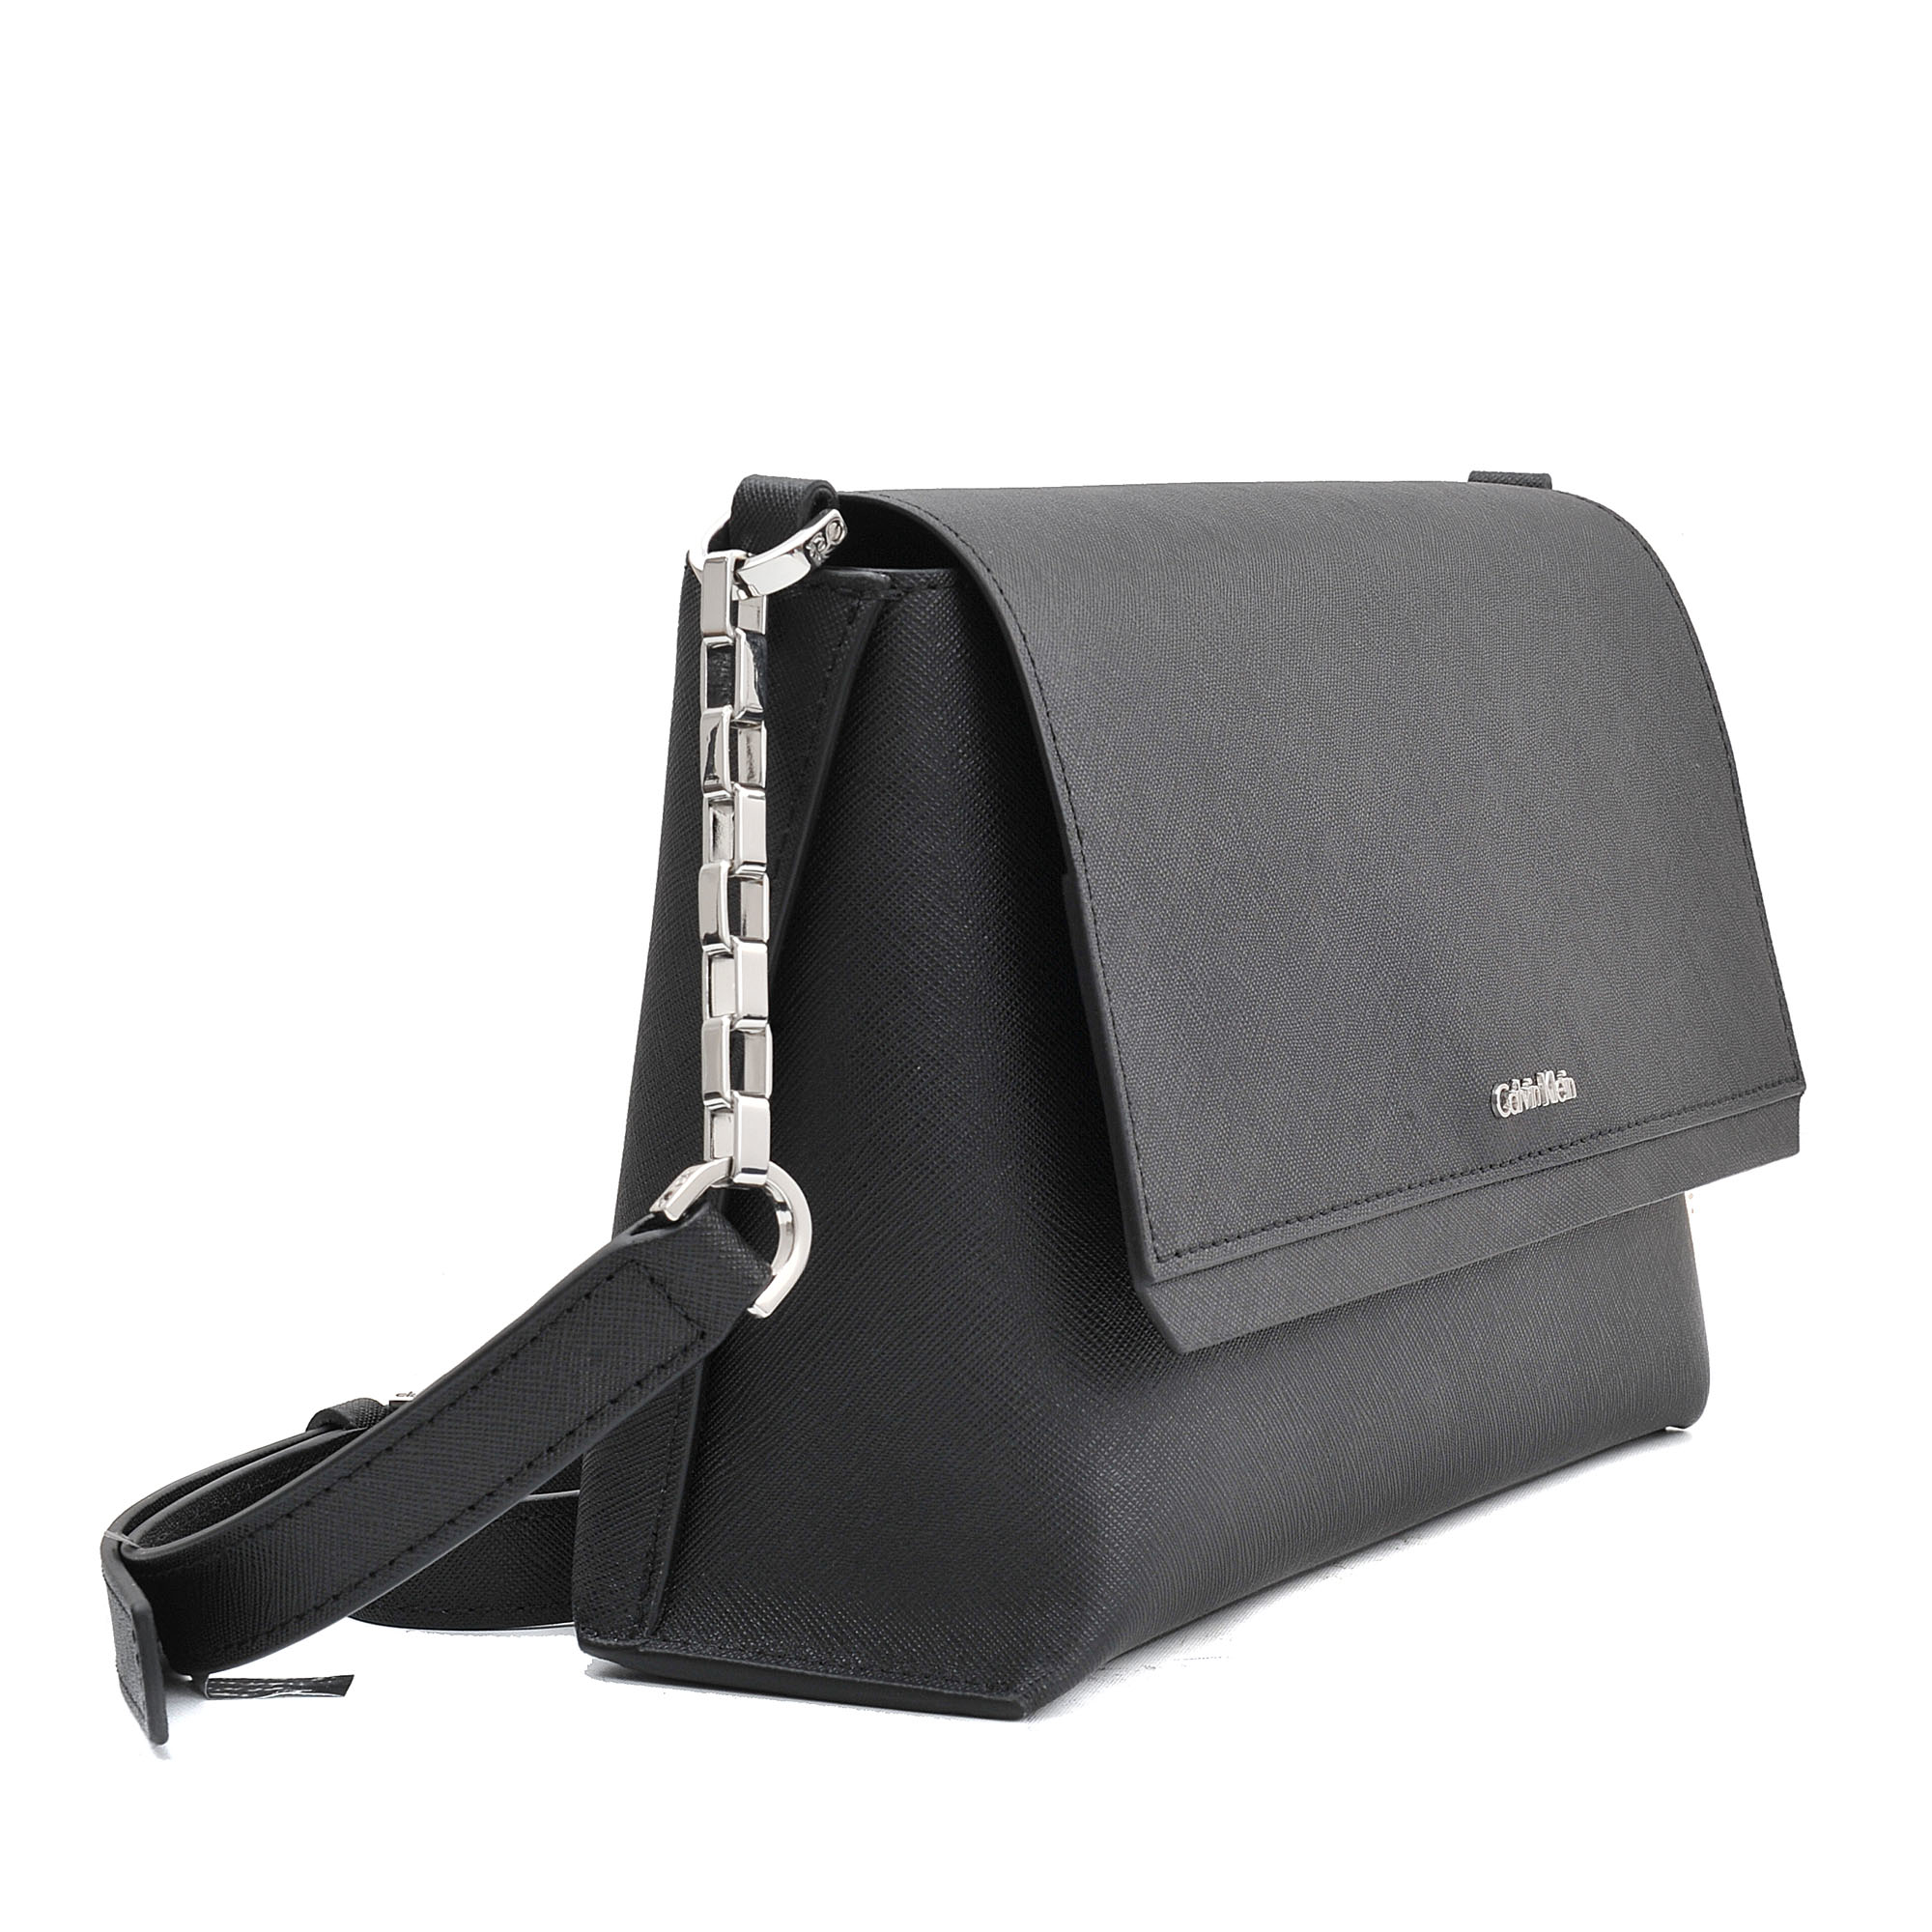 f45a940a09b calvin-klein-crossover-sofie-saffiano-flap-bag-product-0-272525528-normal.jpeg